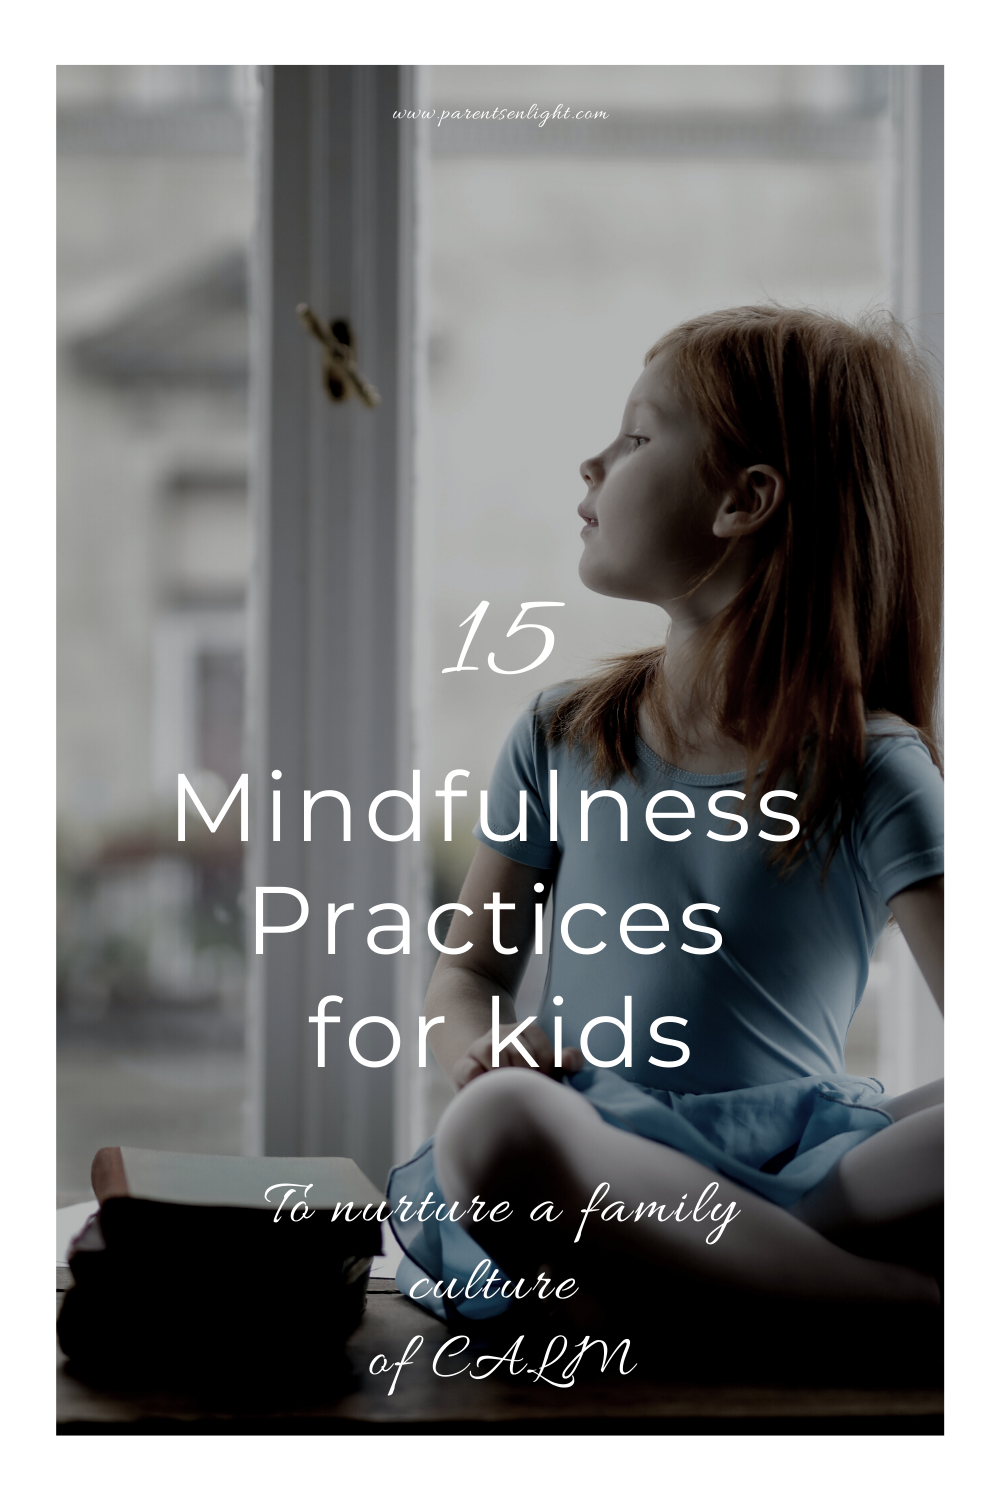 Practicing #Mindfulness with your children is the single best parenting practice you can do. Teaching your kids how to regulate their emotions and to remain present with what is actually happening is life-changing. Read on to learn how you can start :) #parenting #mindfulness #positiveparenting #positivepsychology #calm #familylife #emotioncoaching #emotionalregulation #self-regulation